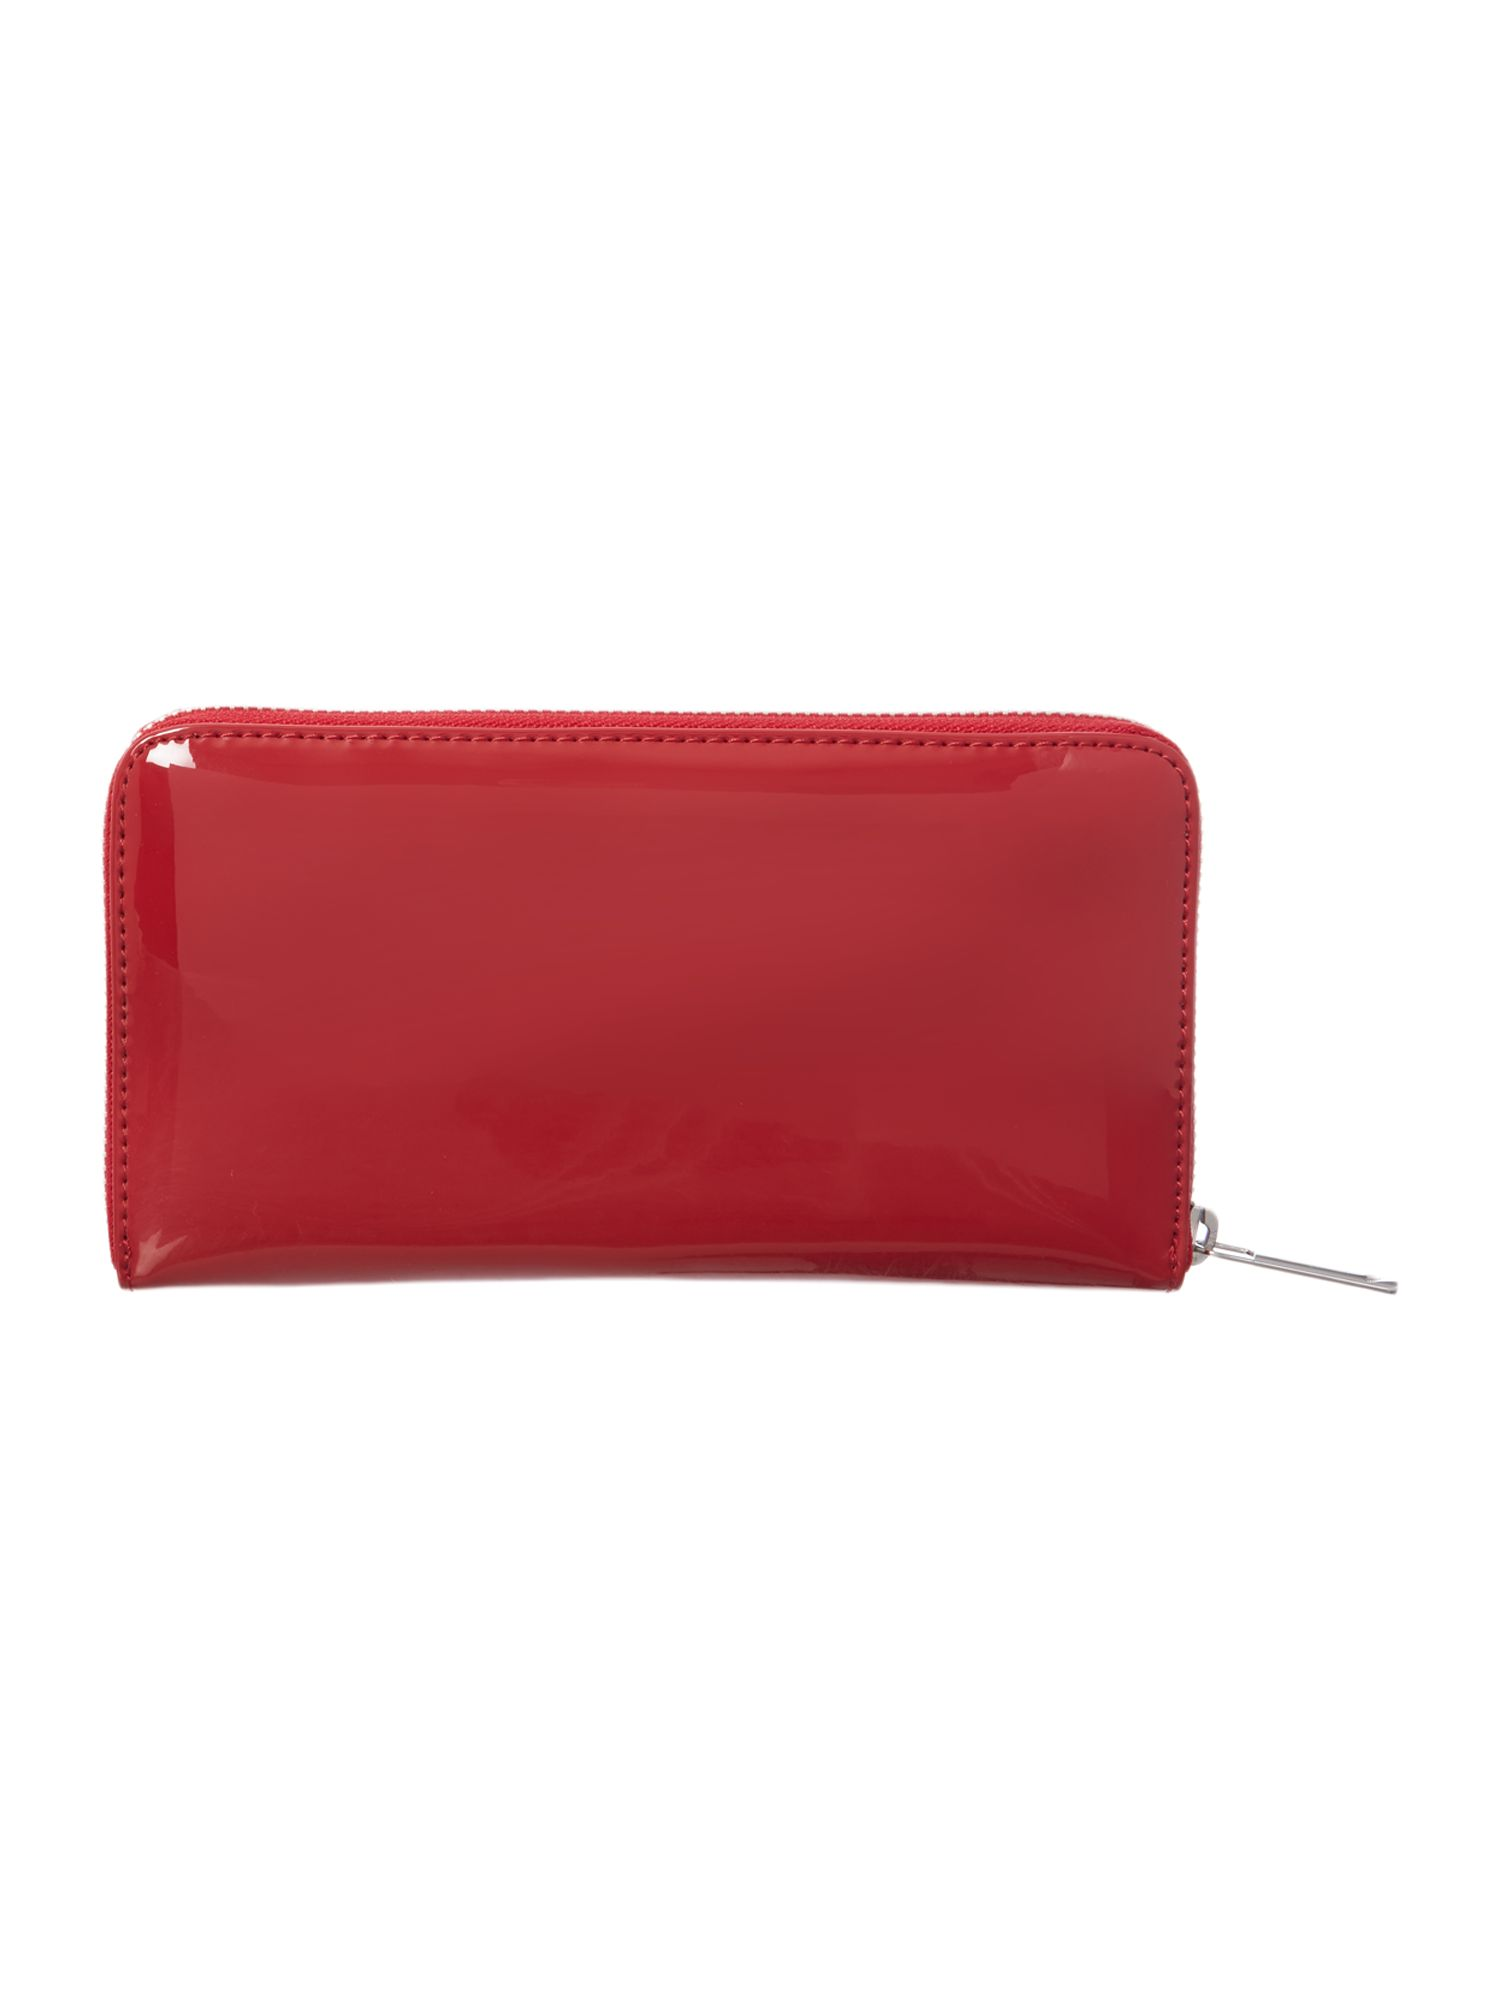 Red large ziparound purse